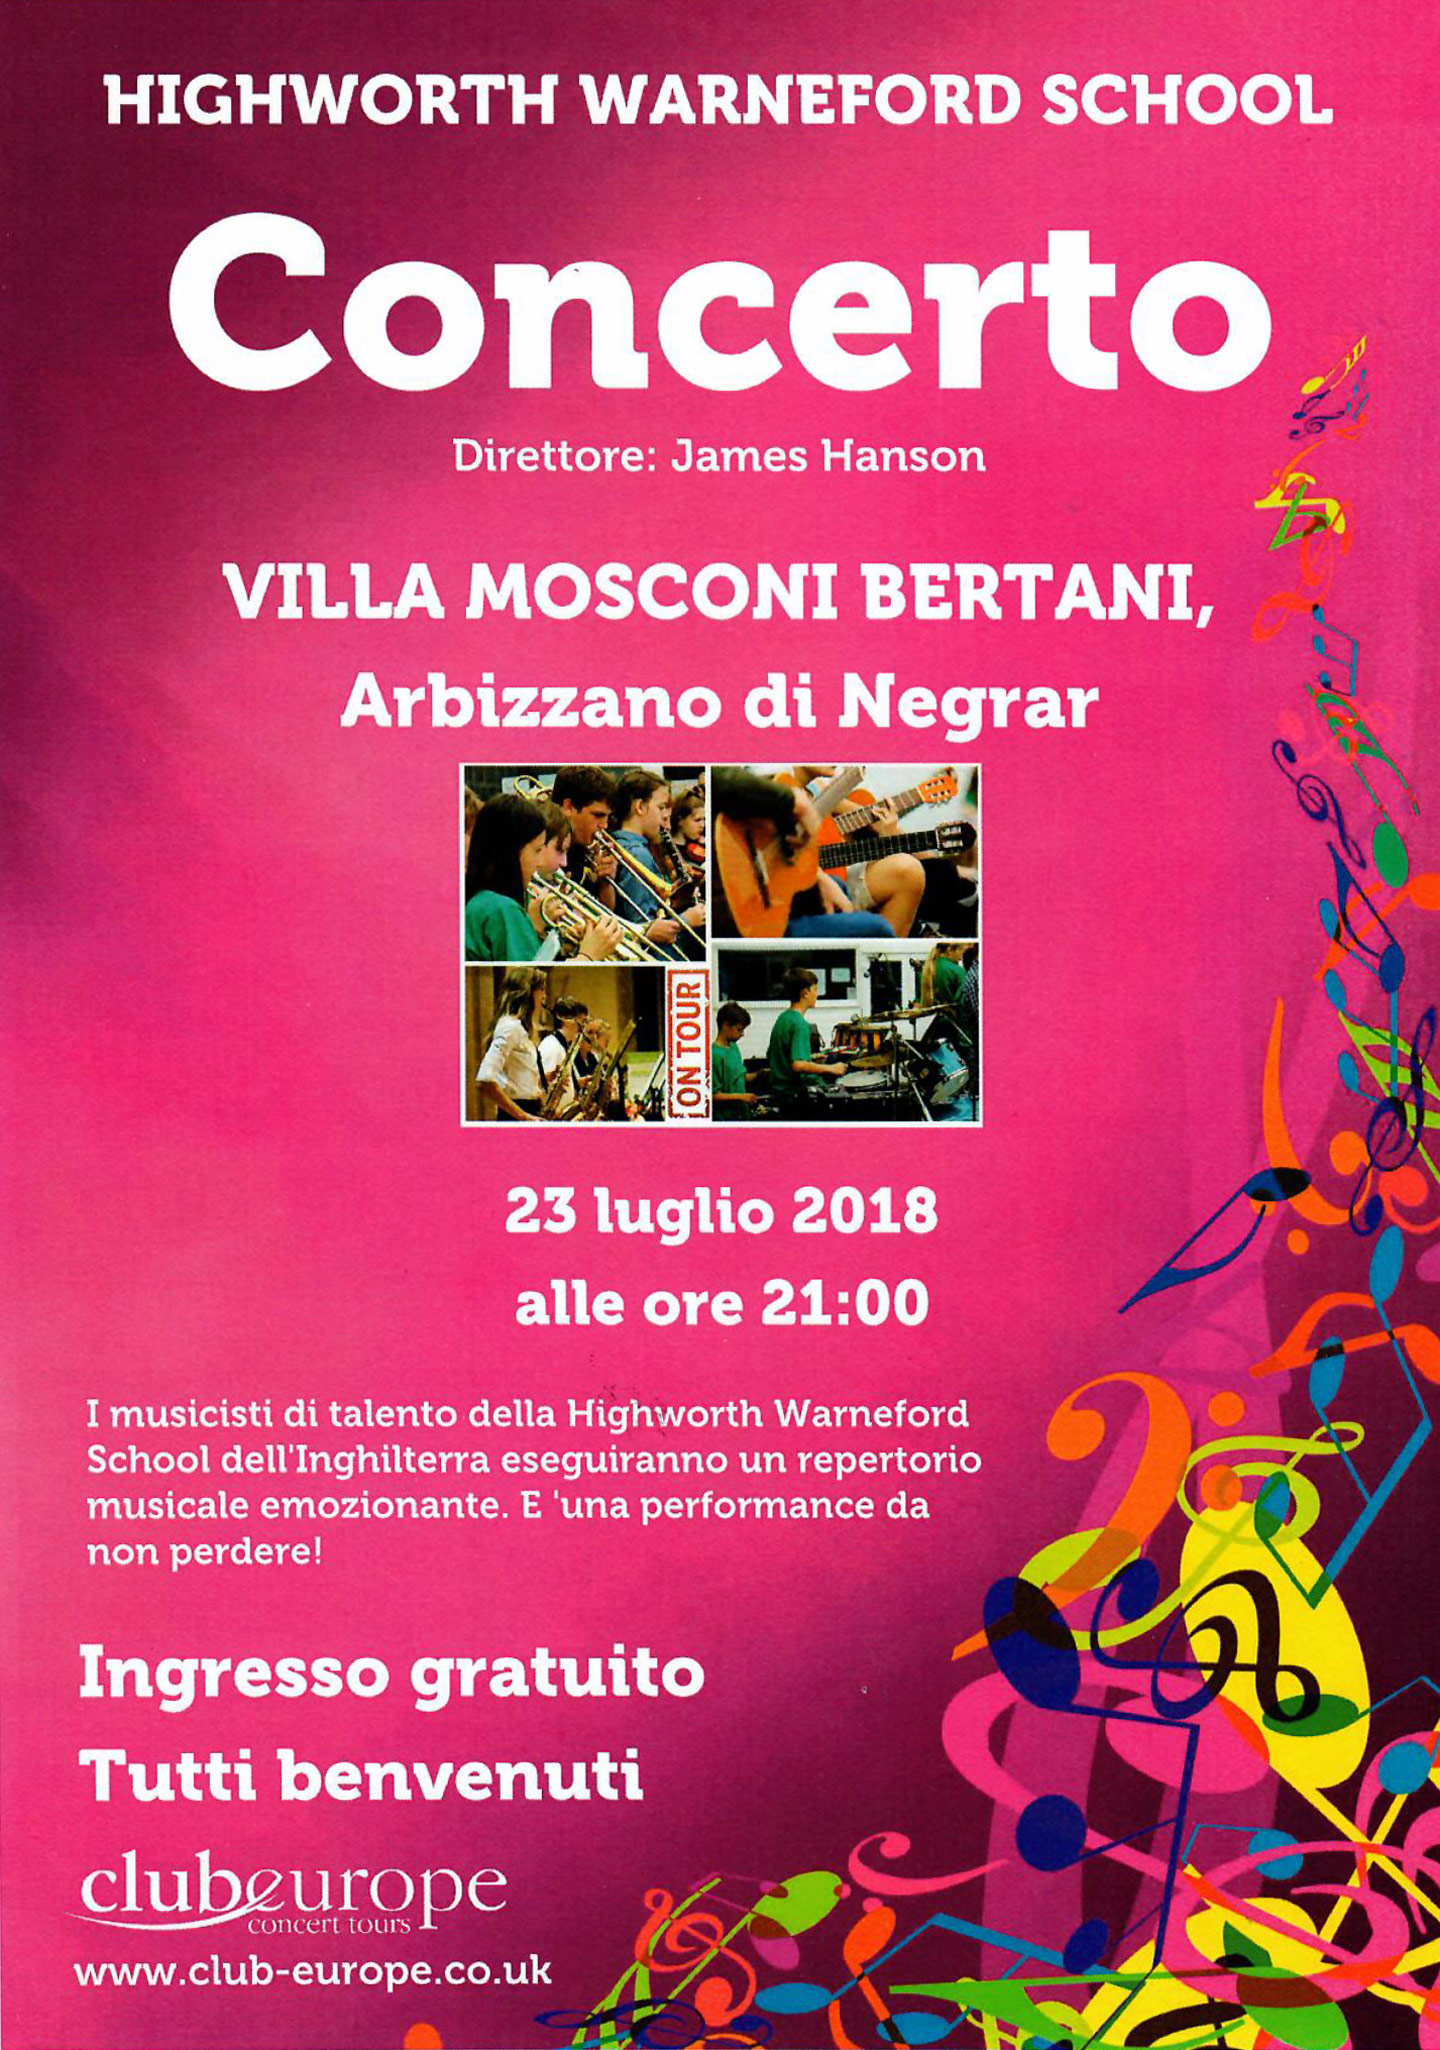 Concerto - Highworth Warneford School - 23 luglio alle 21